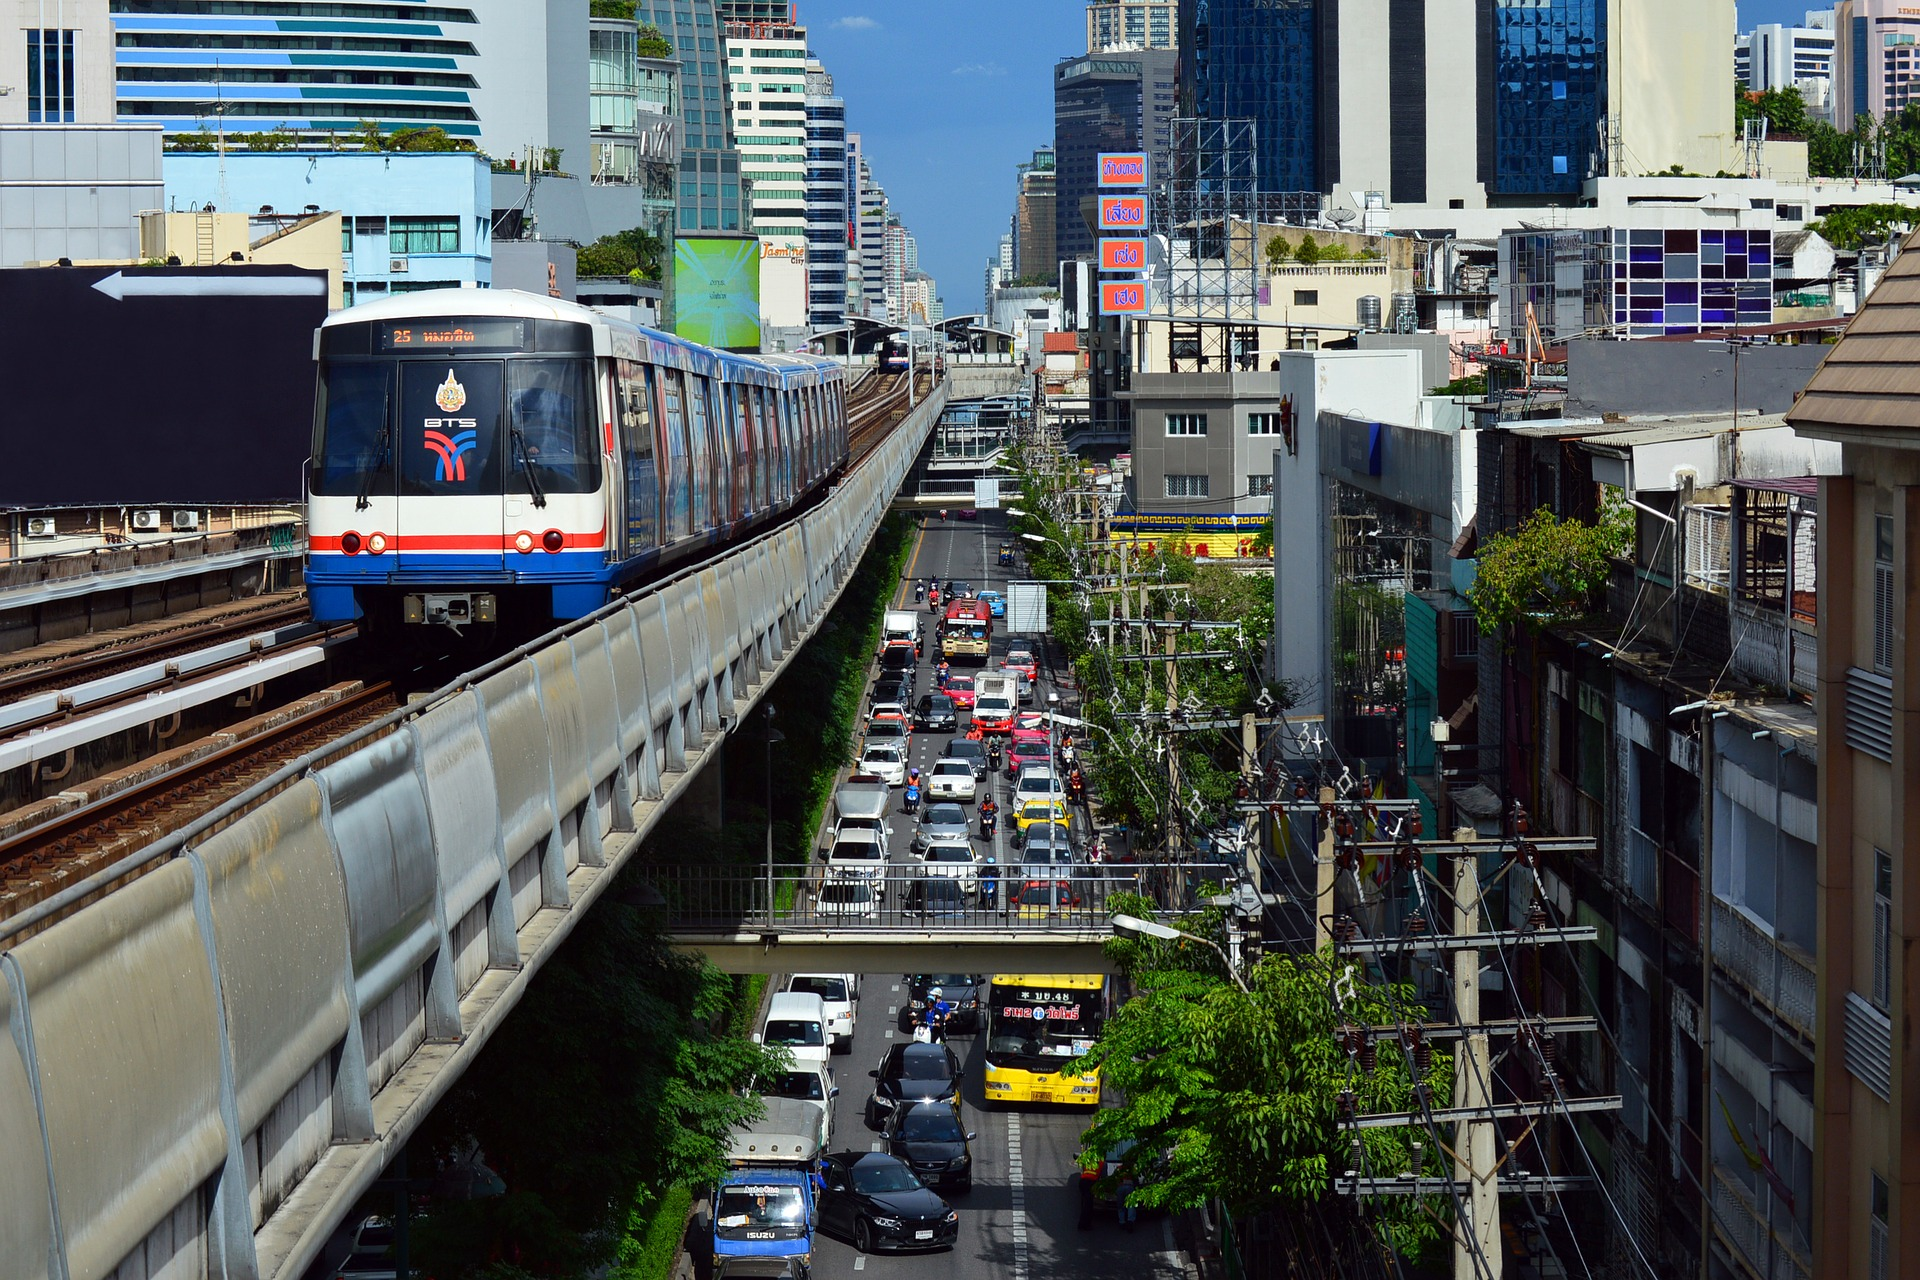 BTS in Bangkok: See the city thanks to Skytrain | The Blond